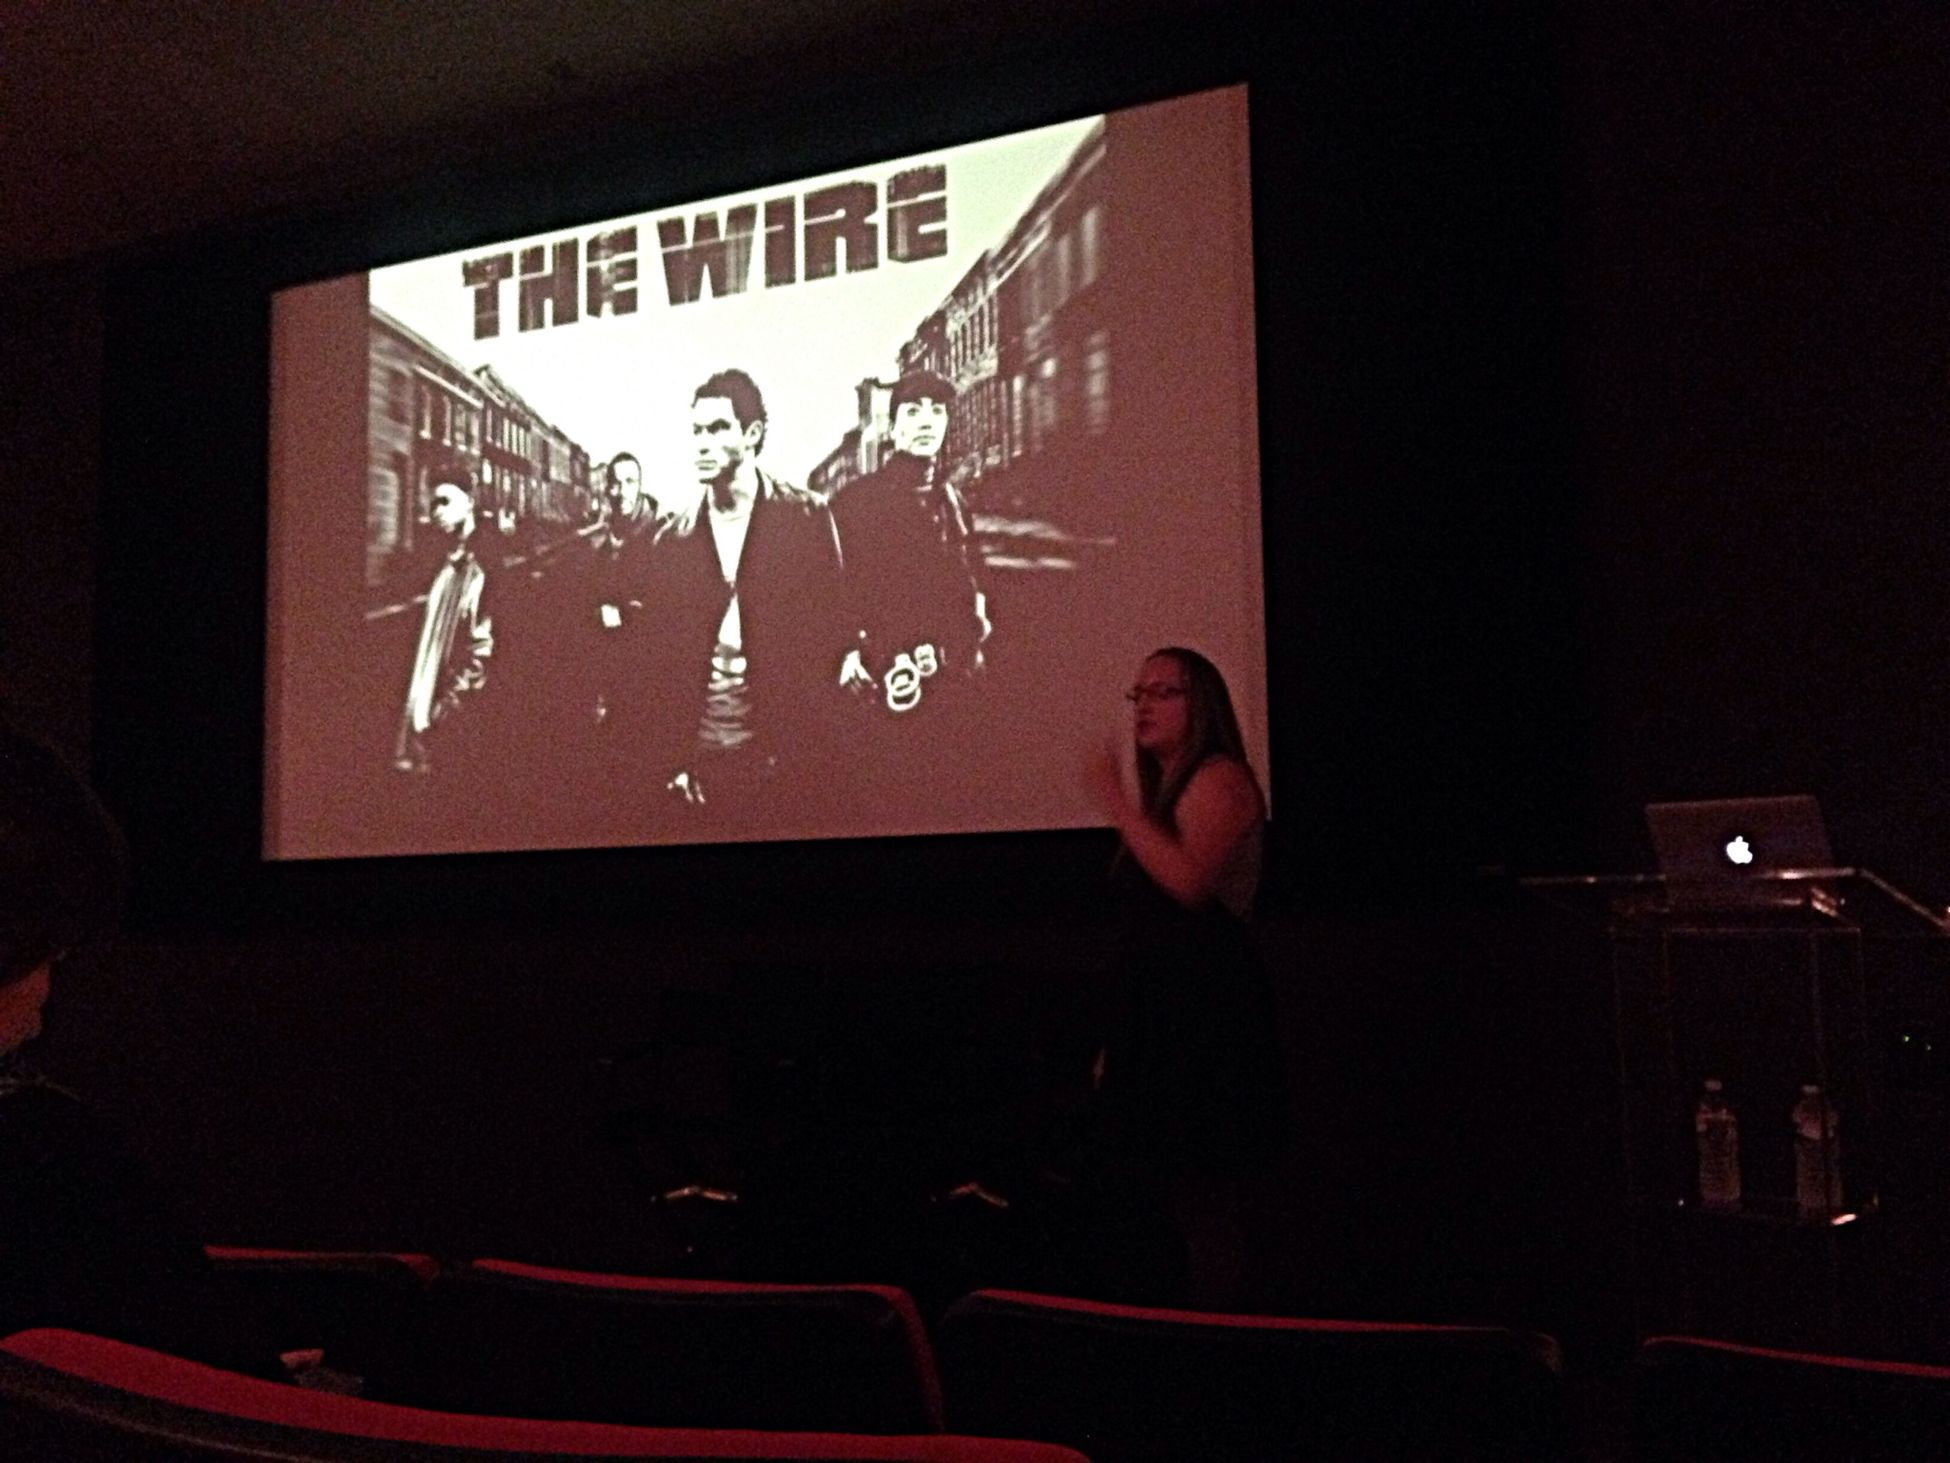 Showrunner Masterclass -- @CaitlinBurns shares lessons from the Story Business at @NYMediaCenter